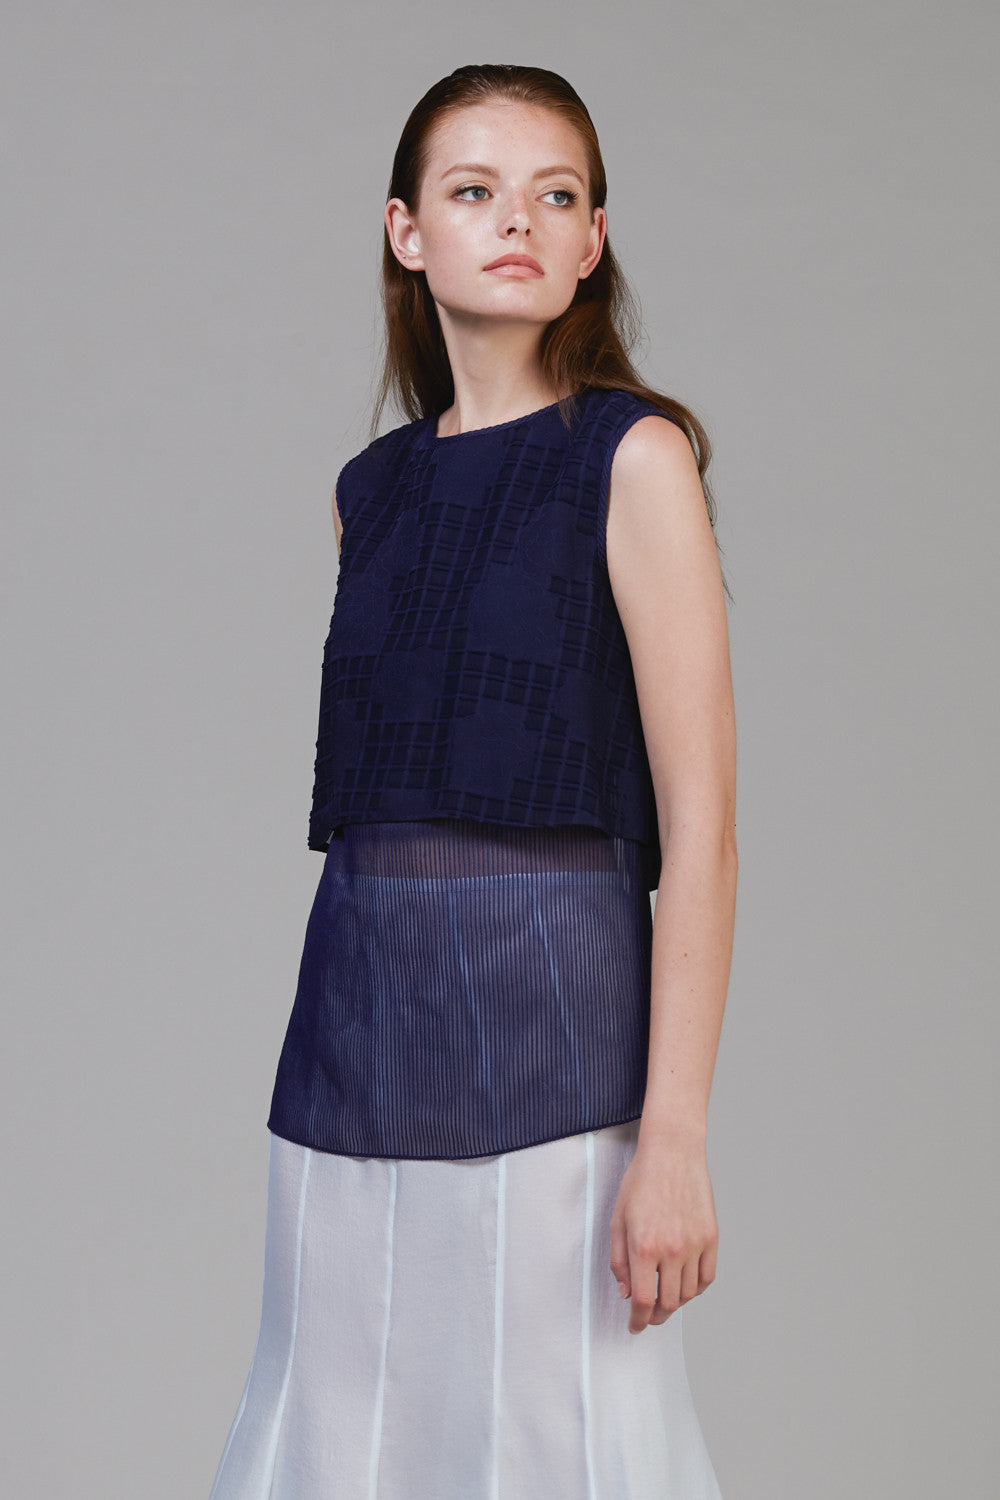 Jacquard Sheer Layered Top #05